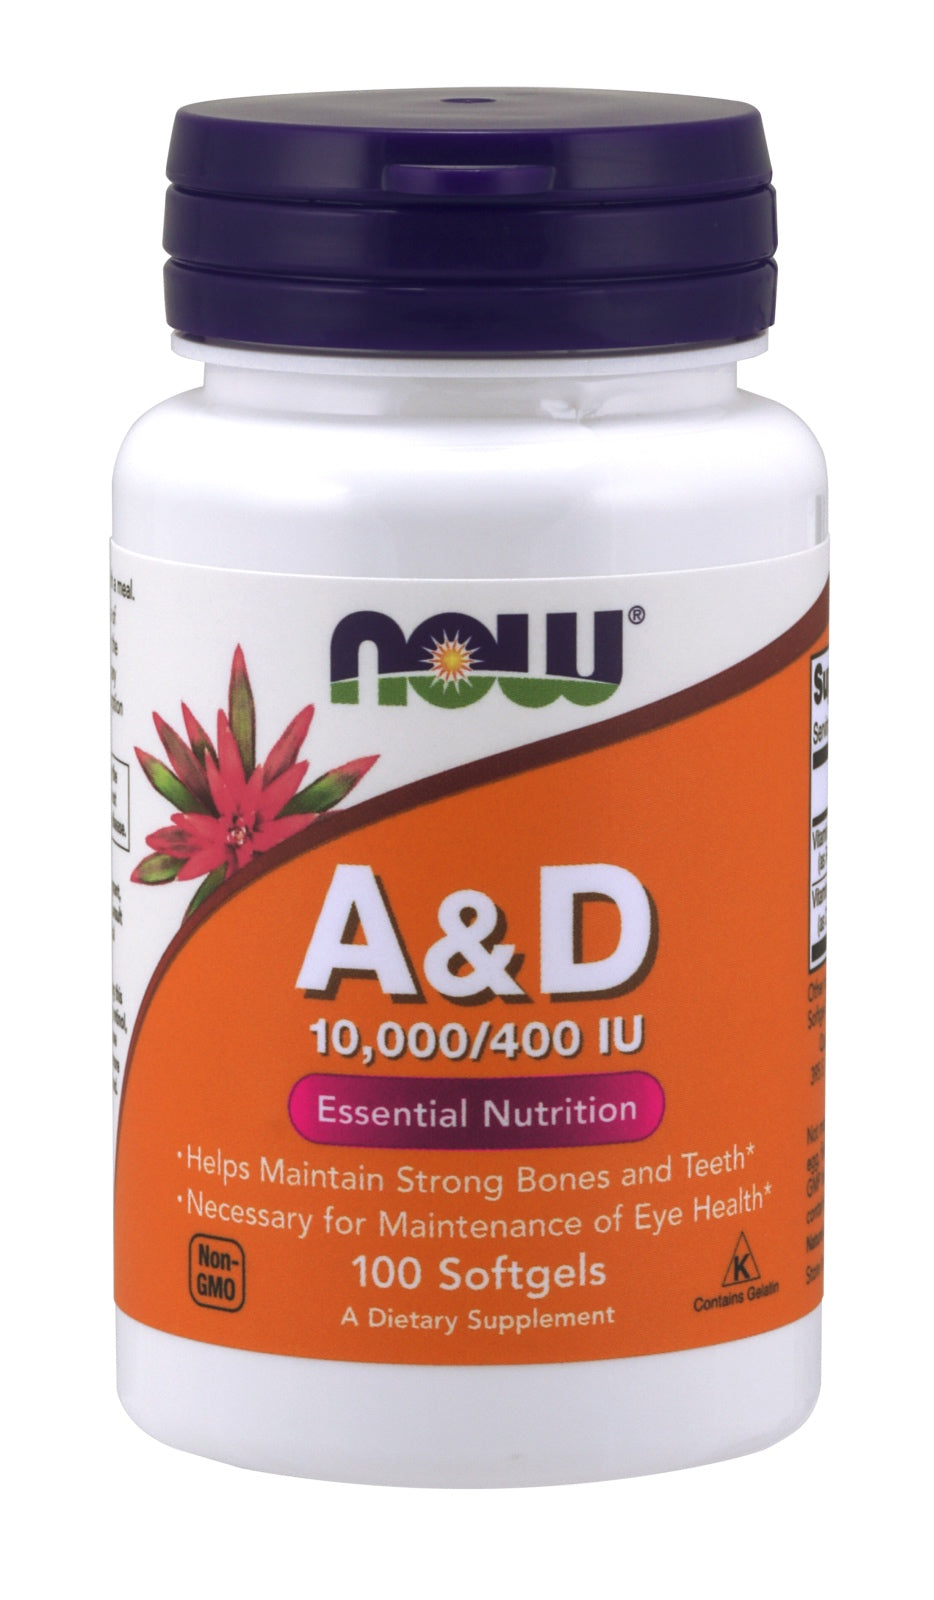 Vitamin A & D 10000/400 IU, 100 Softgels